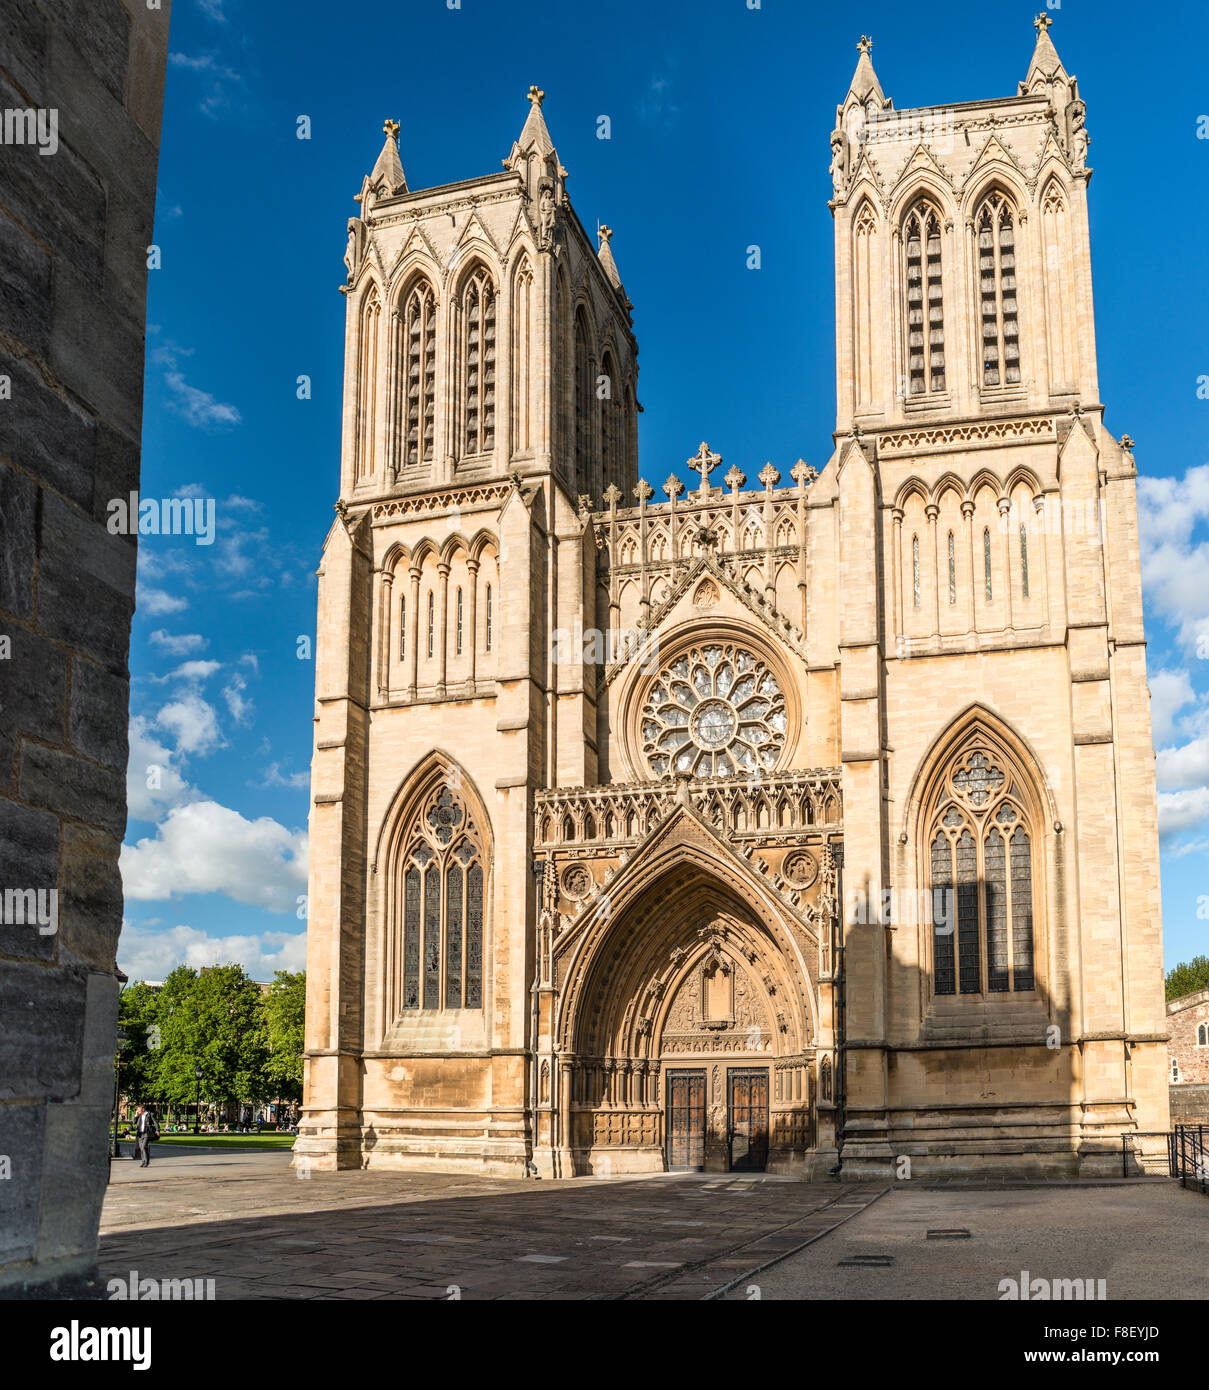 The Cathedral Church of the Holy and Undivided Trinity, also known as Bristol Cathedral, on College Green, Somerset, - Stock Image